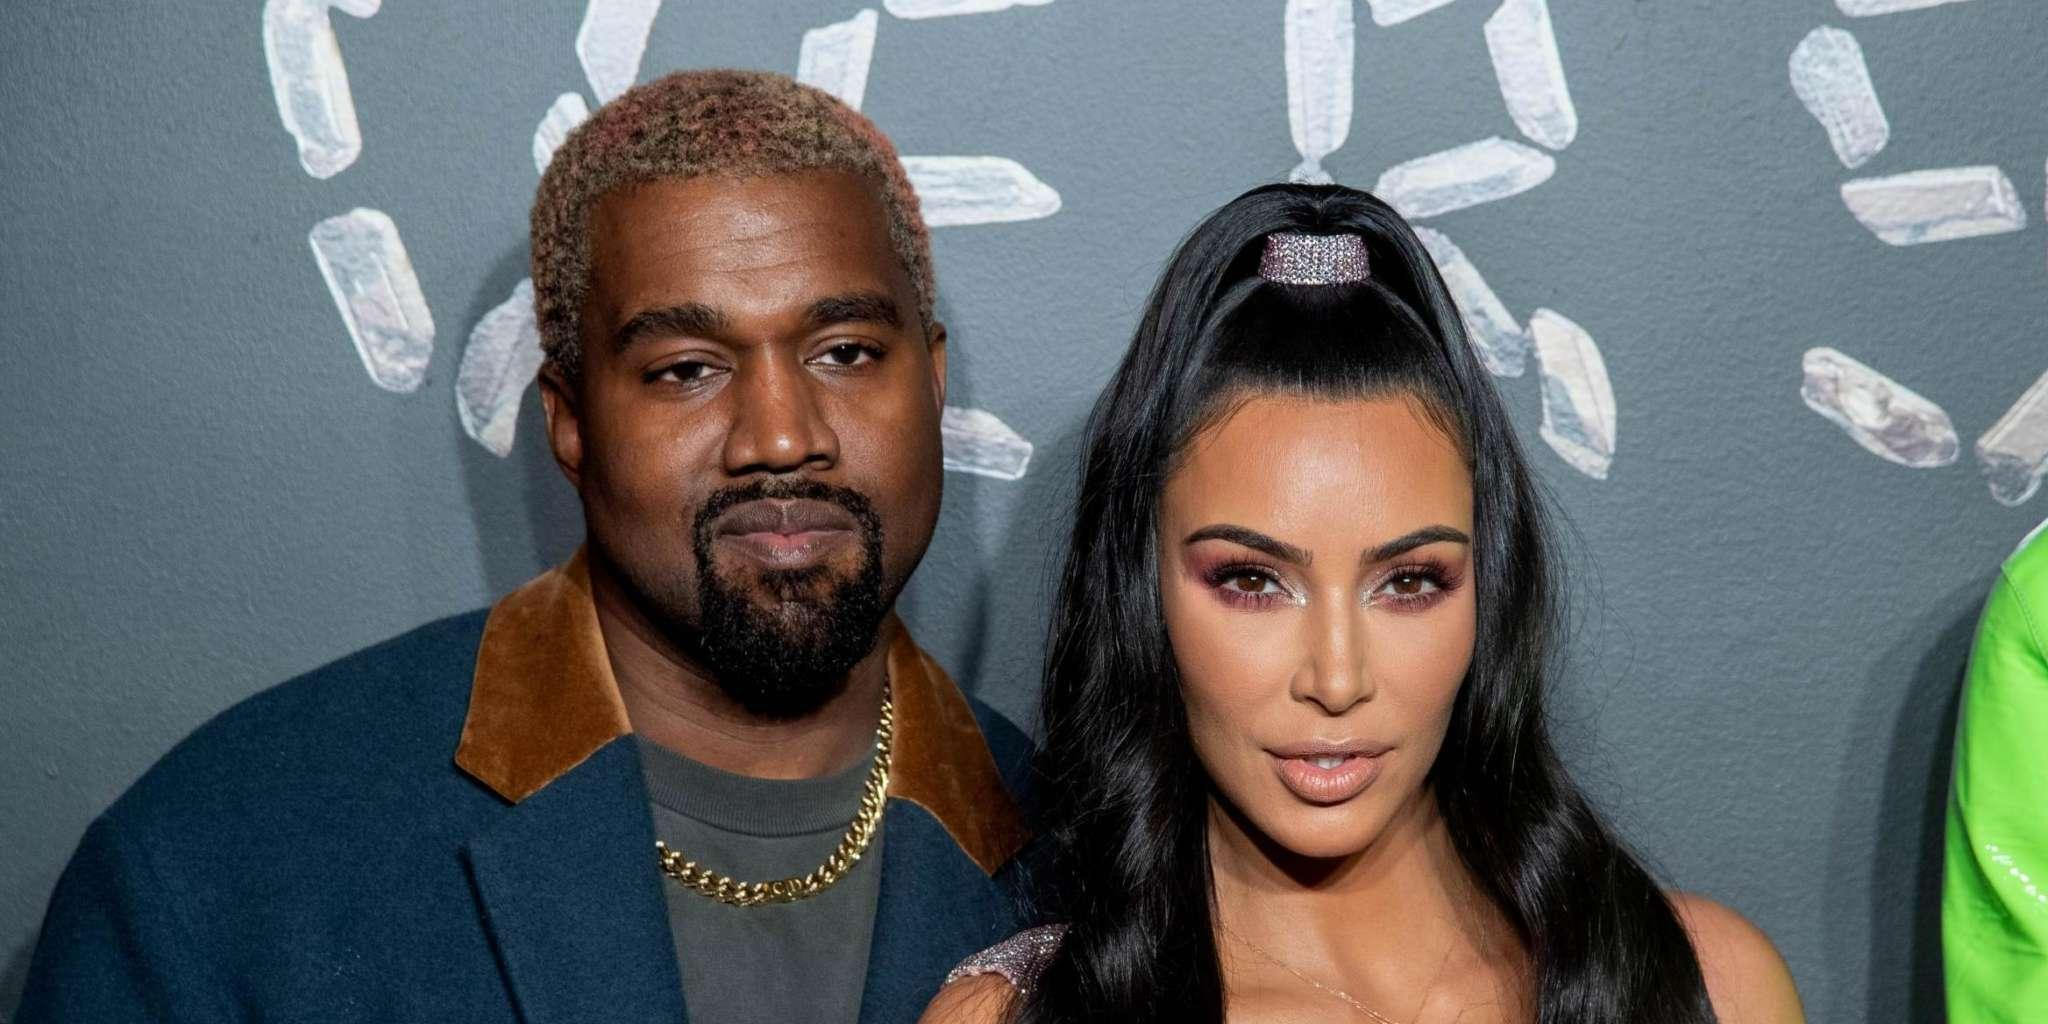 KUWK: Kanye West's $1 Million Charity Donation In Kim's Name For Her Birthday Has Reportedly Been 'Strengthening Their Marriage!'